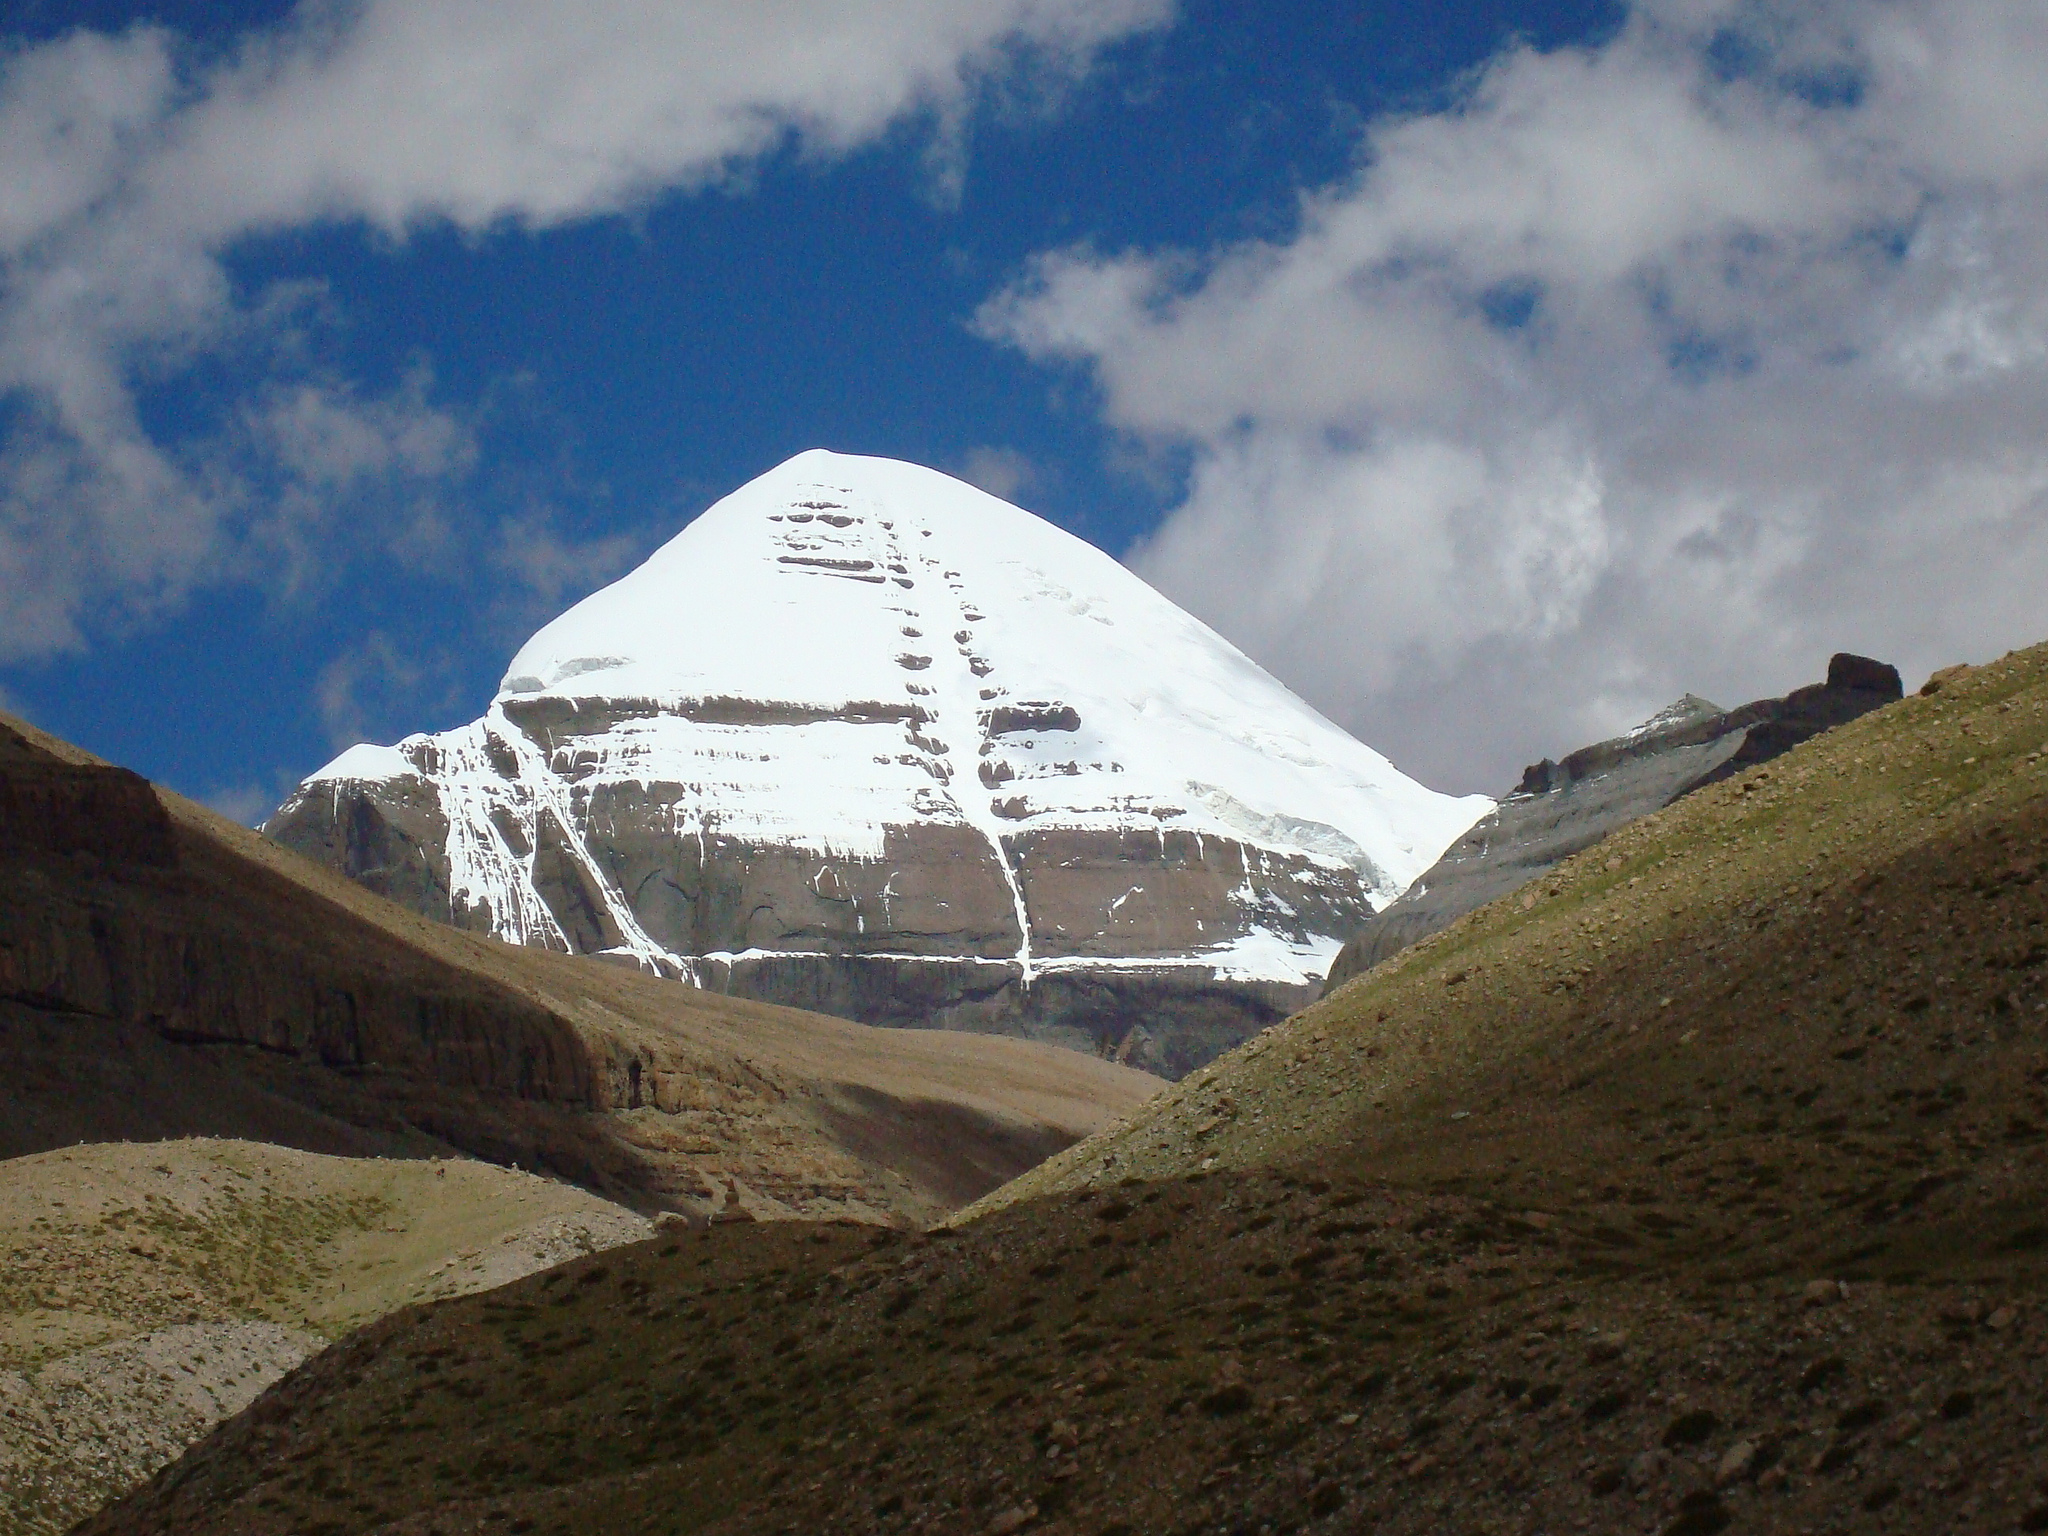 KAILASH MANSAROVAR YATRA BY OVERLAND - 14 DAYS